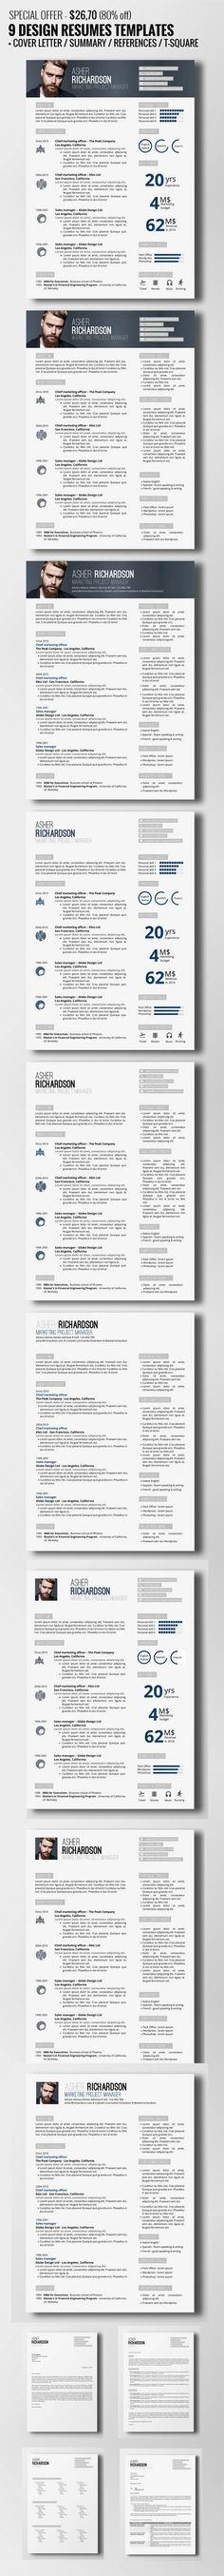 435 best Resume images on Pinterest Resume design, Design resume - Different Resume Templates